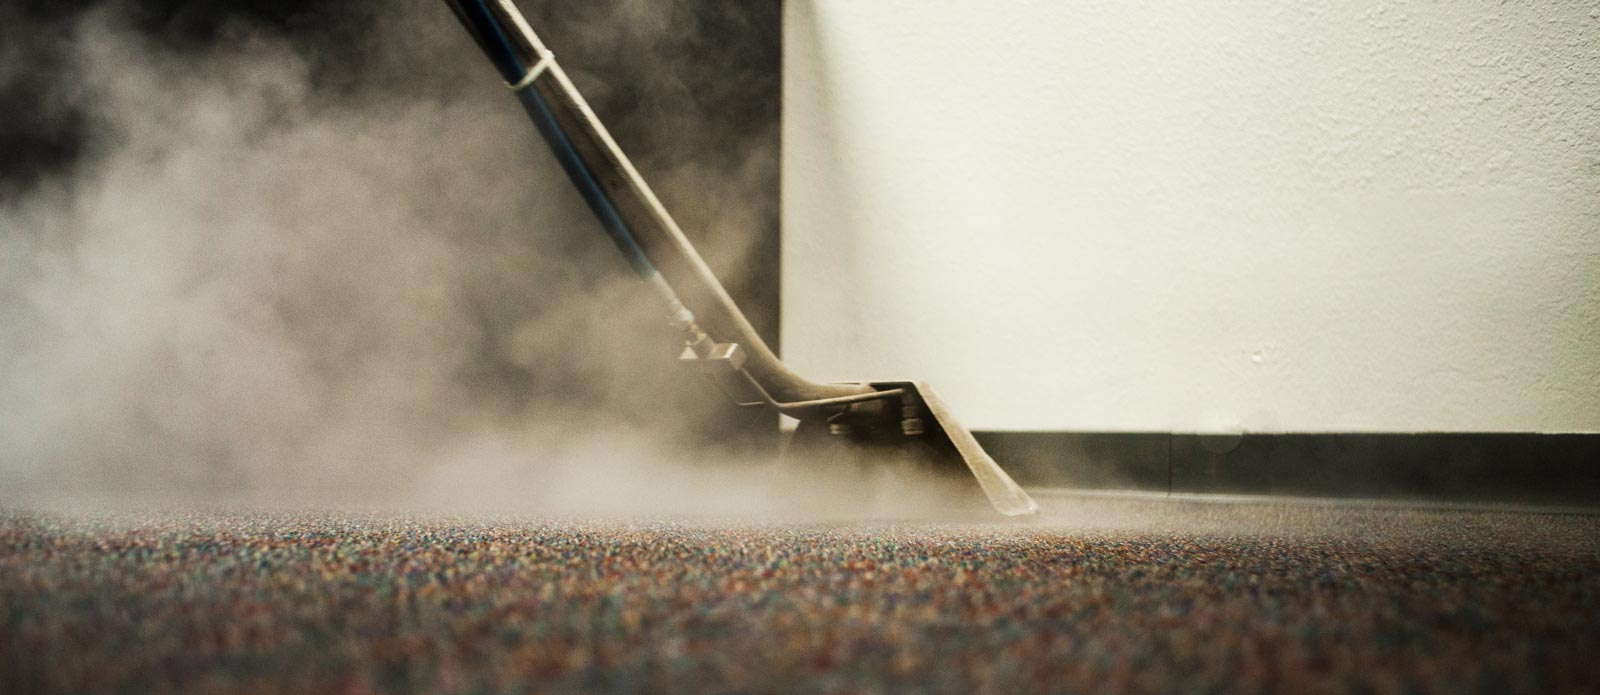 carpet-cleaning-new-2